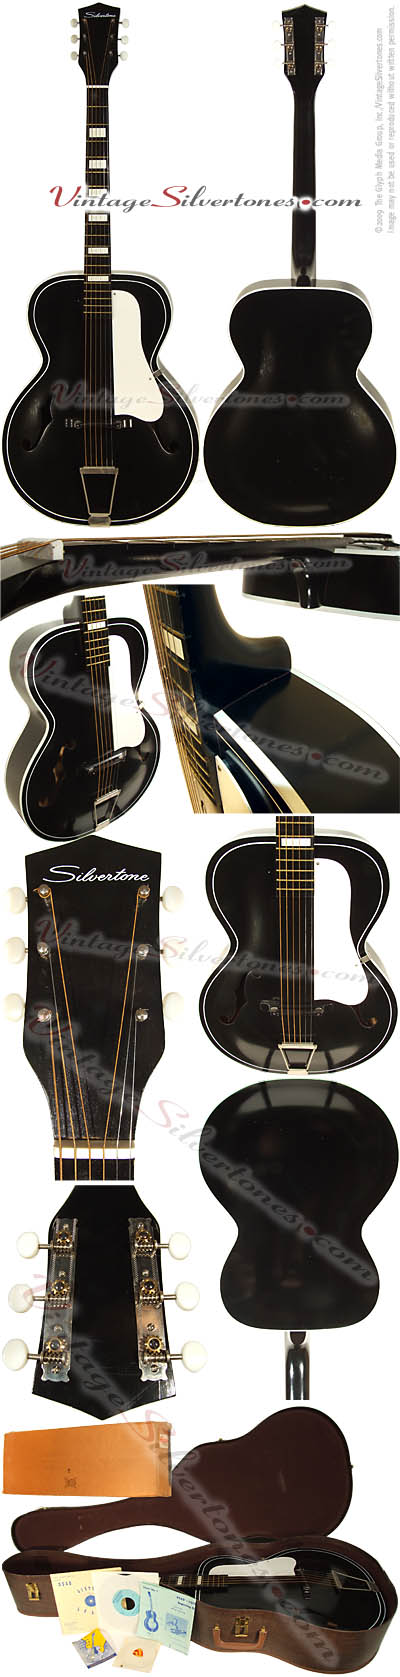 Silvertone 658 - acoustic black circa 1965 - NOS new old stock includes original case, paperwork, and shipping box from Sears